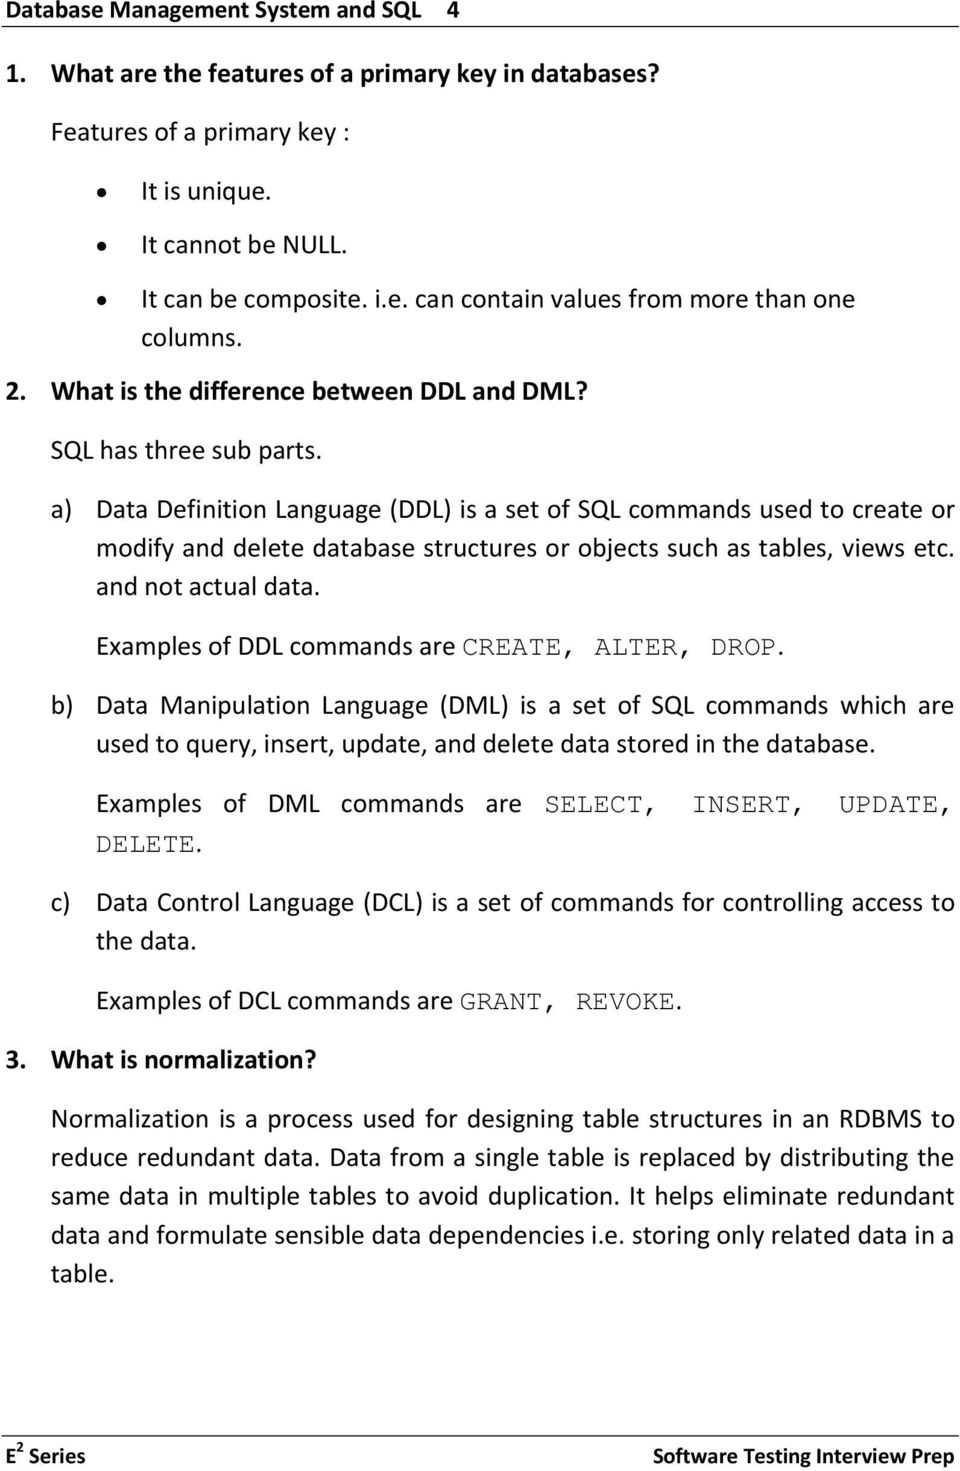 a) Data Definition Language (DDL) is a set of SQL commands used to create or modify and delete database structures or objects such as tables, views etc. and not actual data.